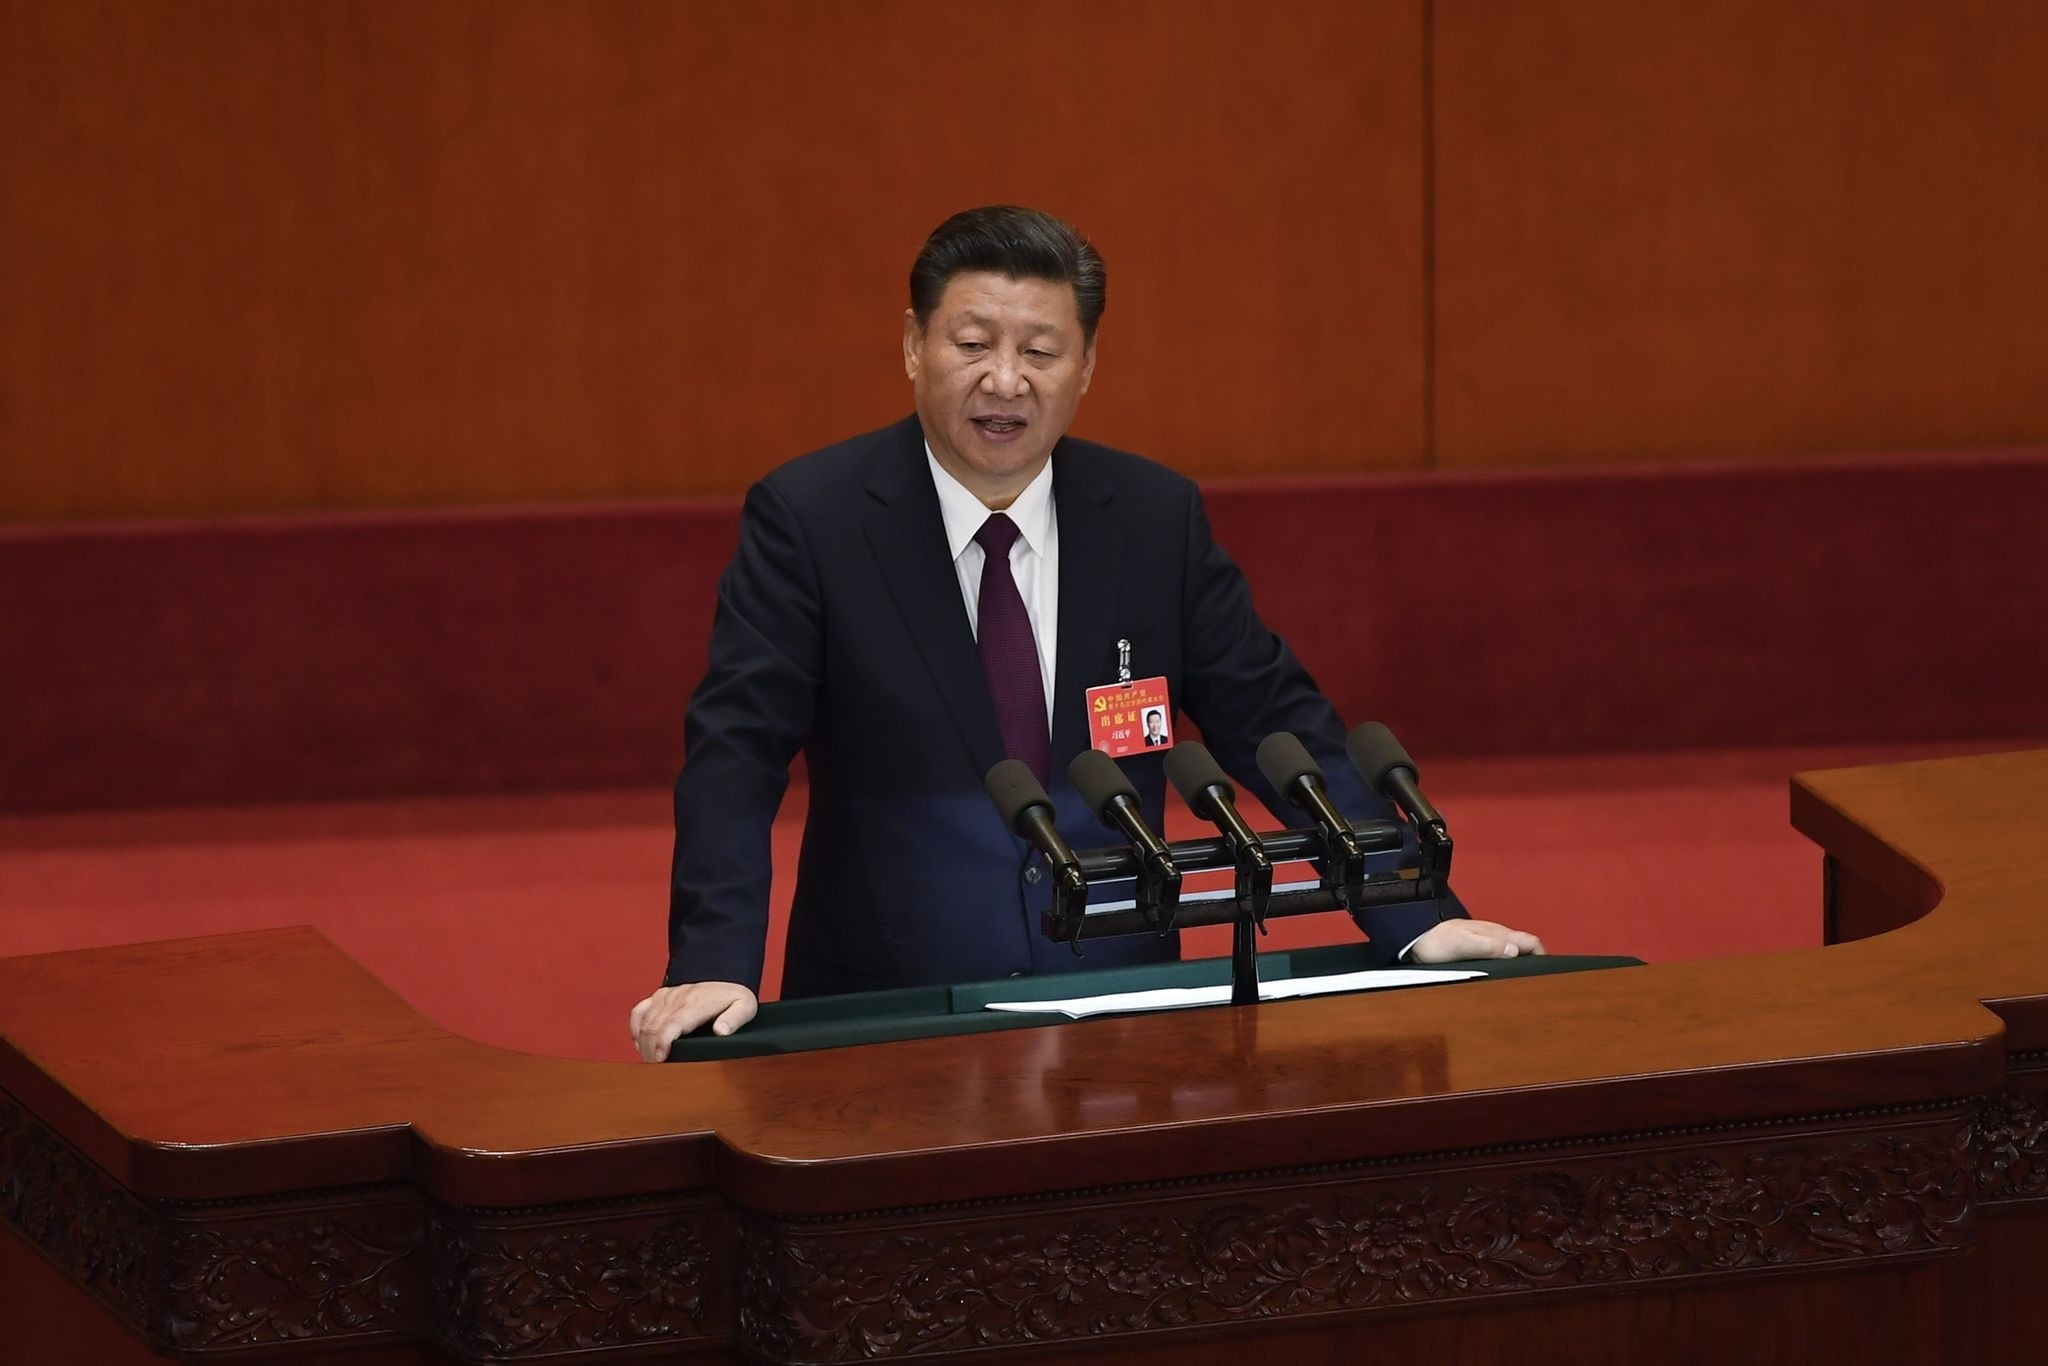 Chinese President Xi delivers a speech at the opening session of the Chinese Communist Party Congress at the Great Hall of the People in Beijing on Oct. 18.